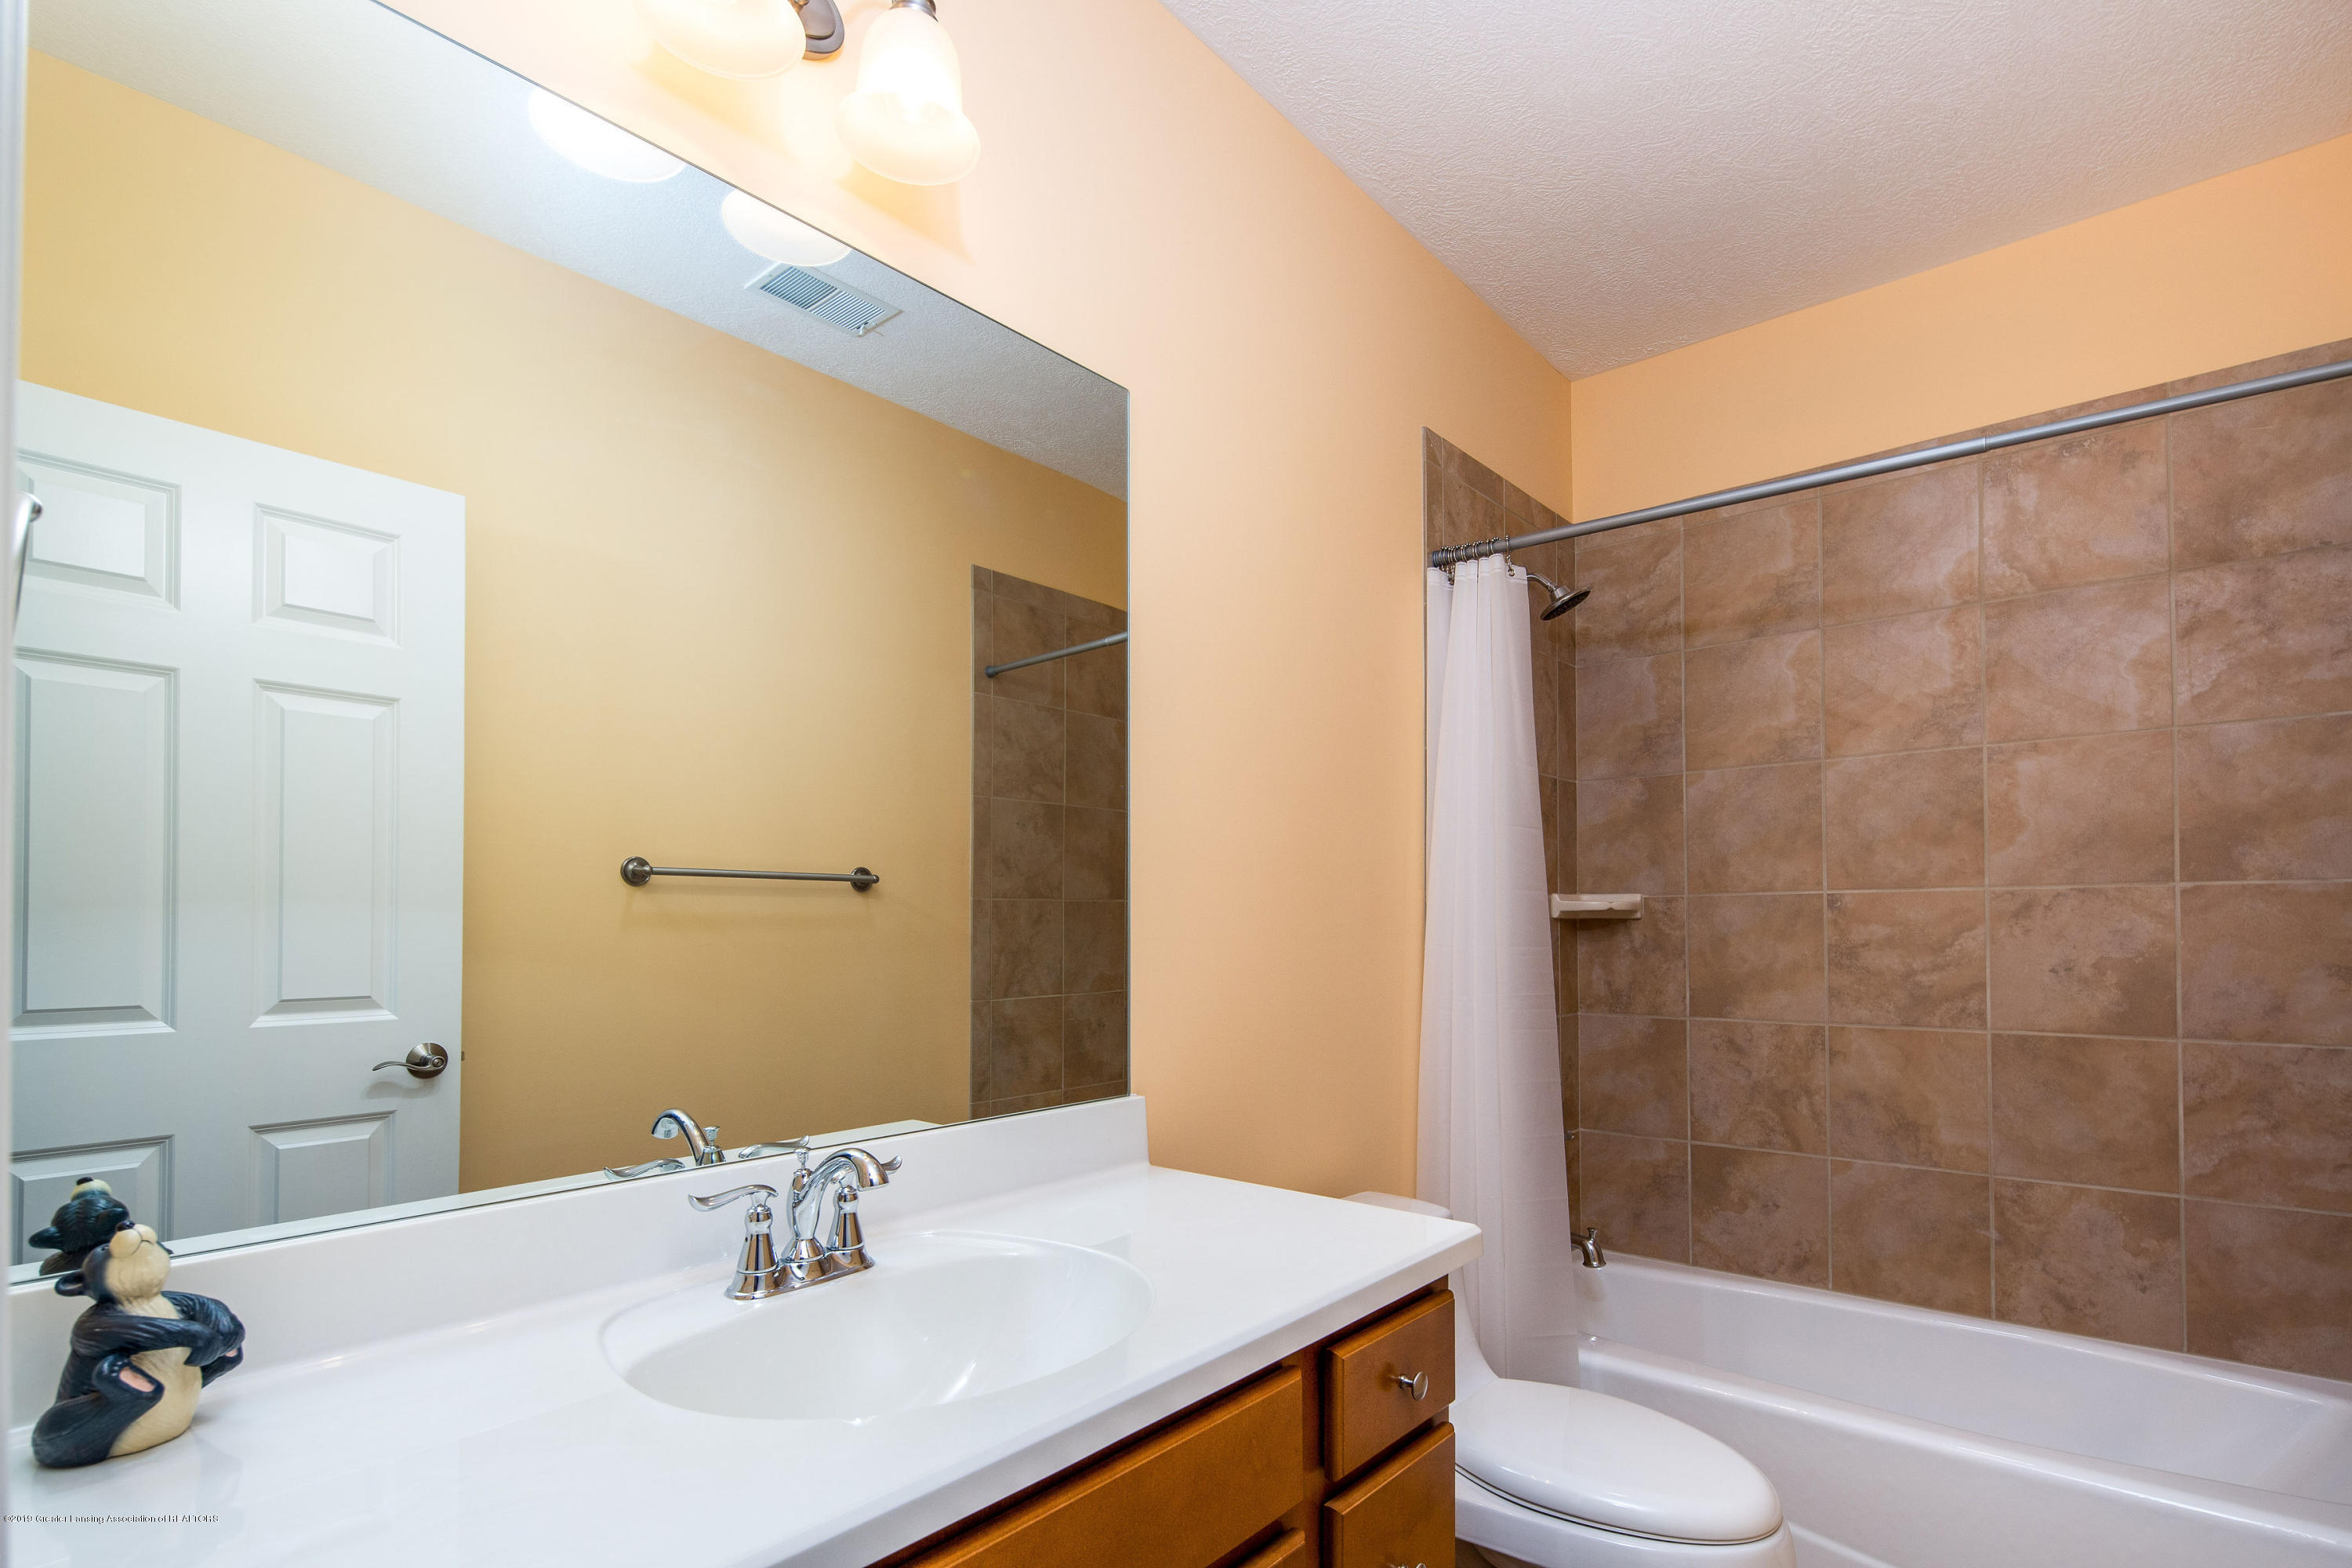 6257 Mereford Ct - 20190426-942A2694-Edit - 22